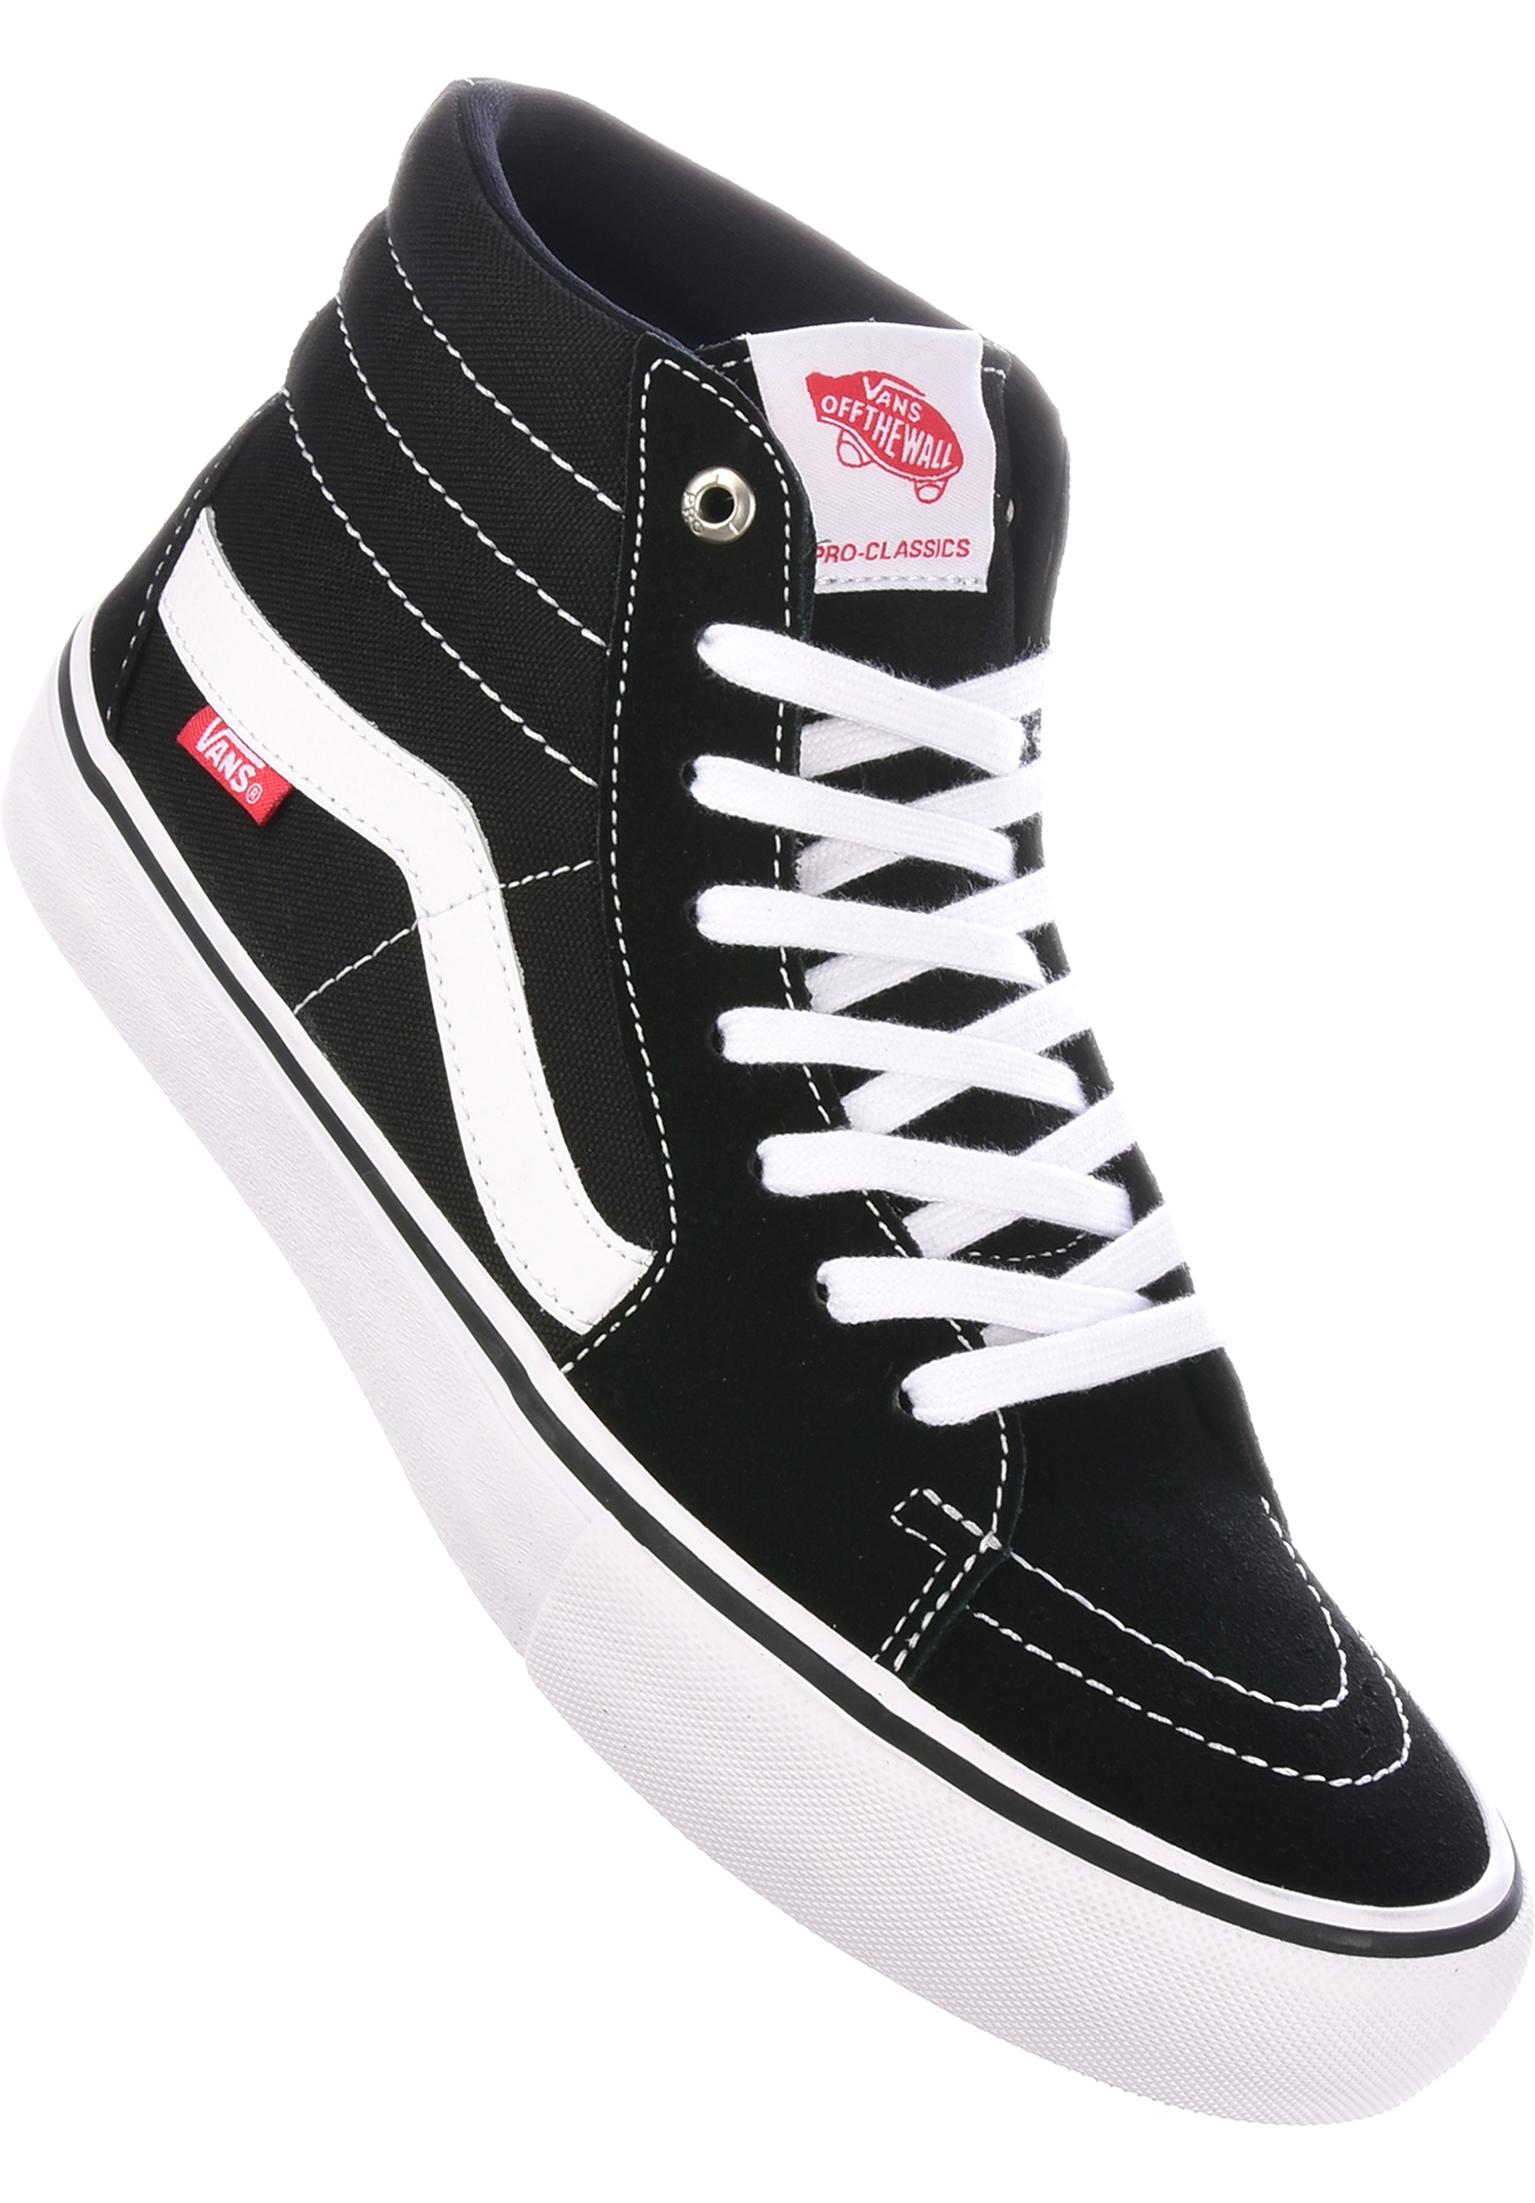 d95c6888b7 Sk8 Hi Pro Vans All Shoes in black-white for Men